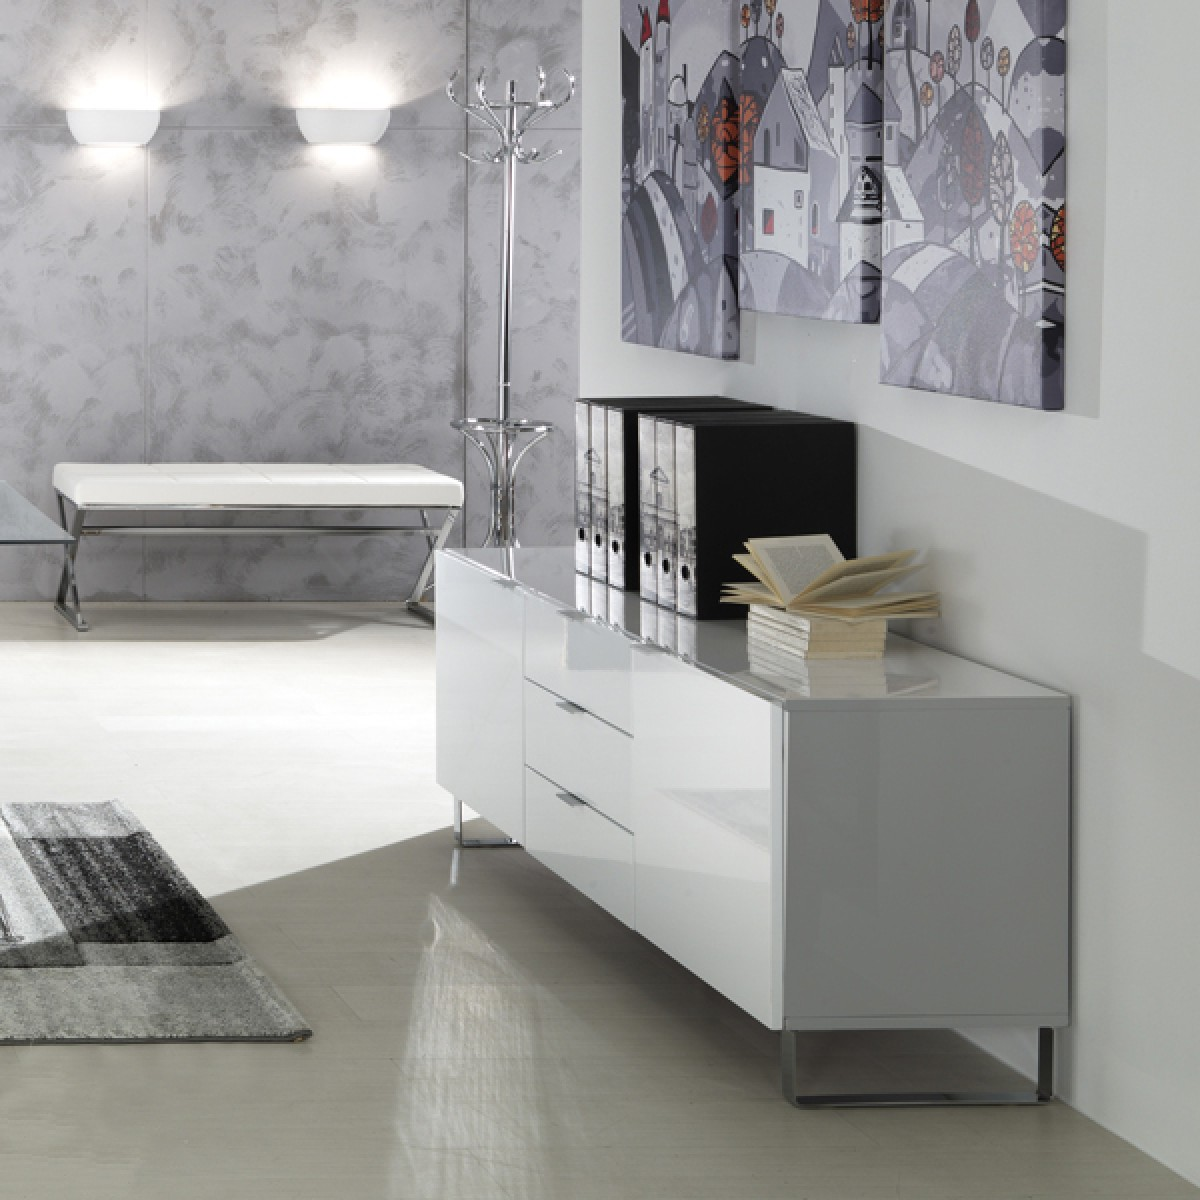 Best Mobile Basso Soggiorno Moderno Ideas - Skilifts.us - skilifts.us